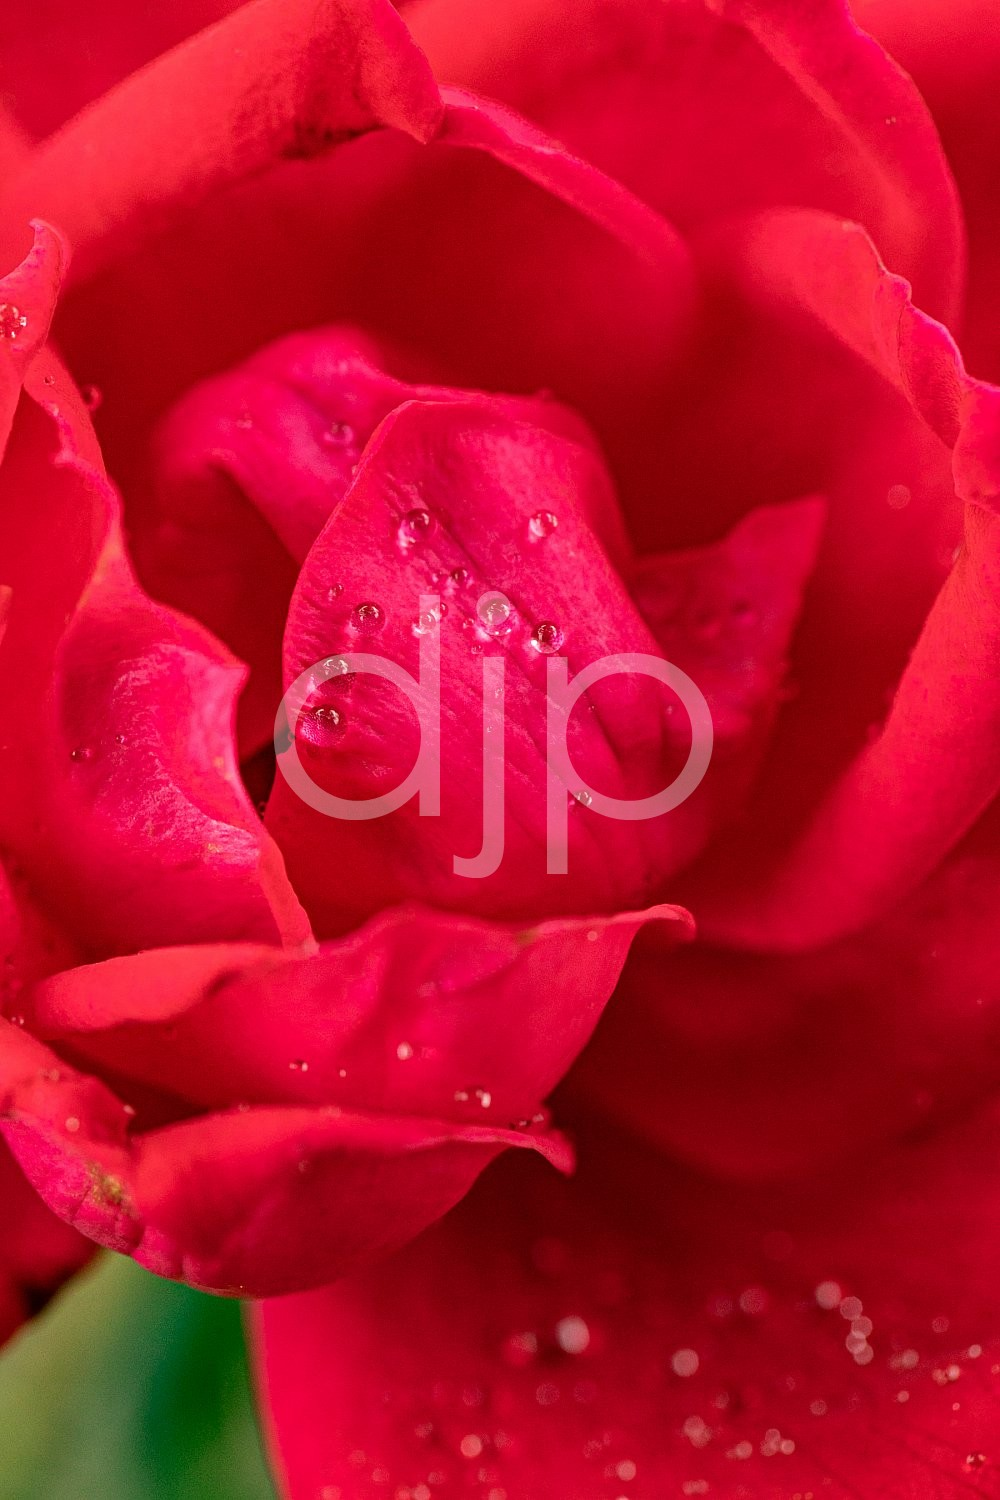 Sugar Land, djonesphoto, excursions with djp, flowers, macro, personal, quarantine, red, rose, D Jones Photography